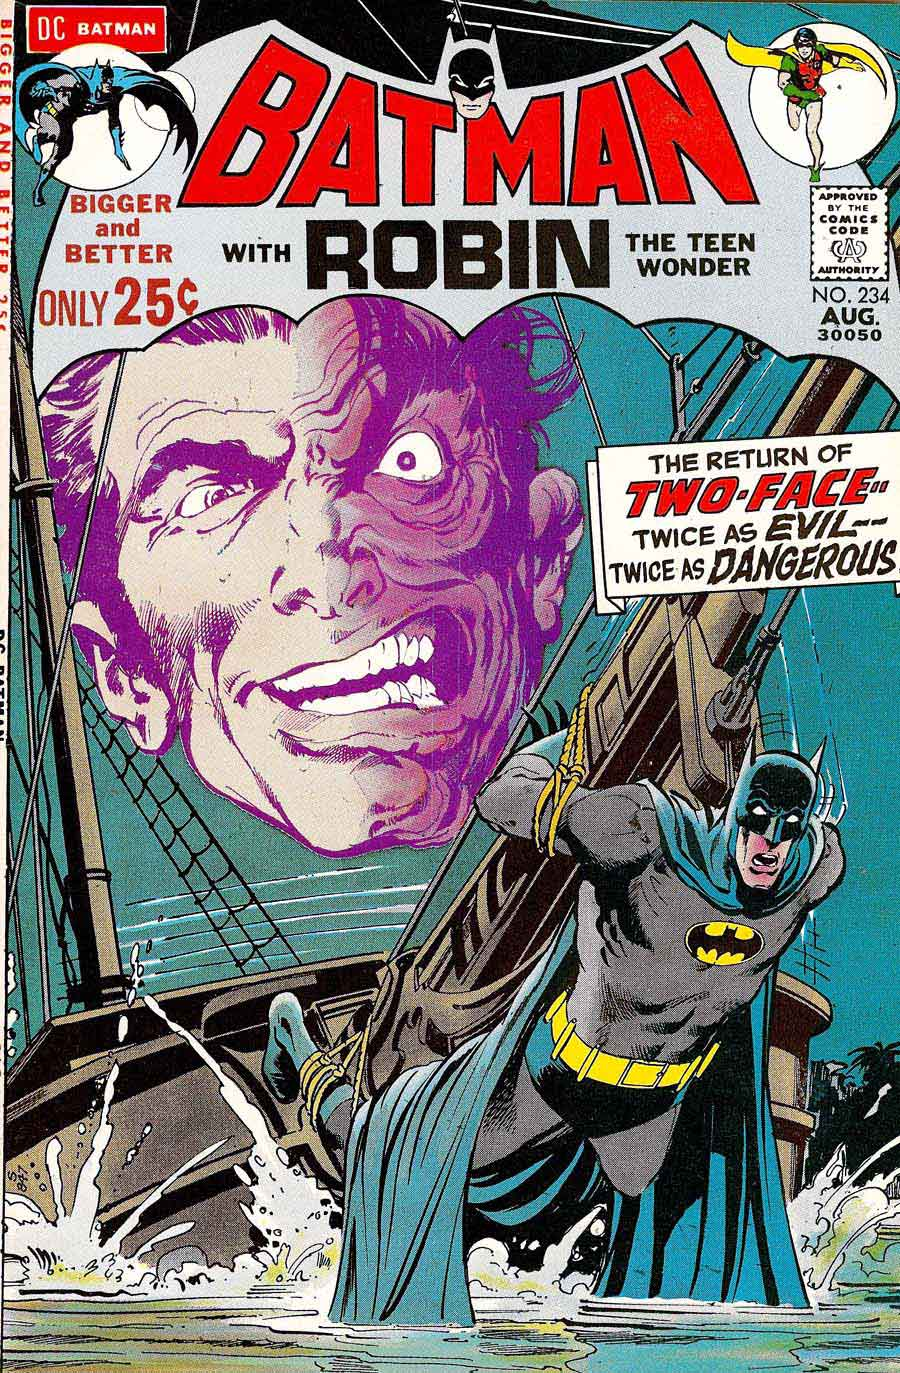 Batman v1 #234 dc comic book cover art by Neal Adams